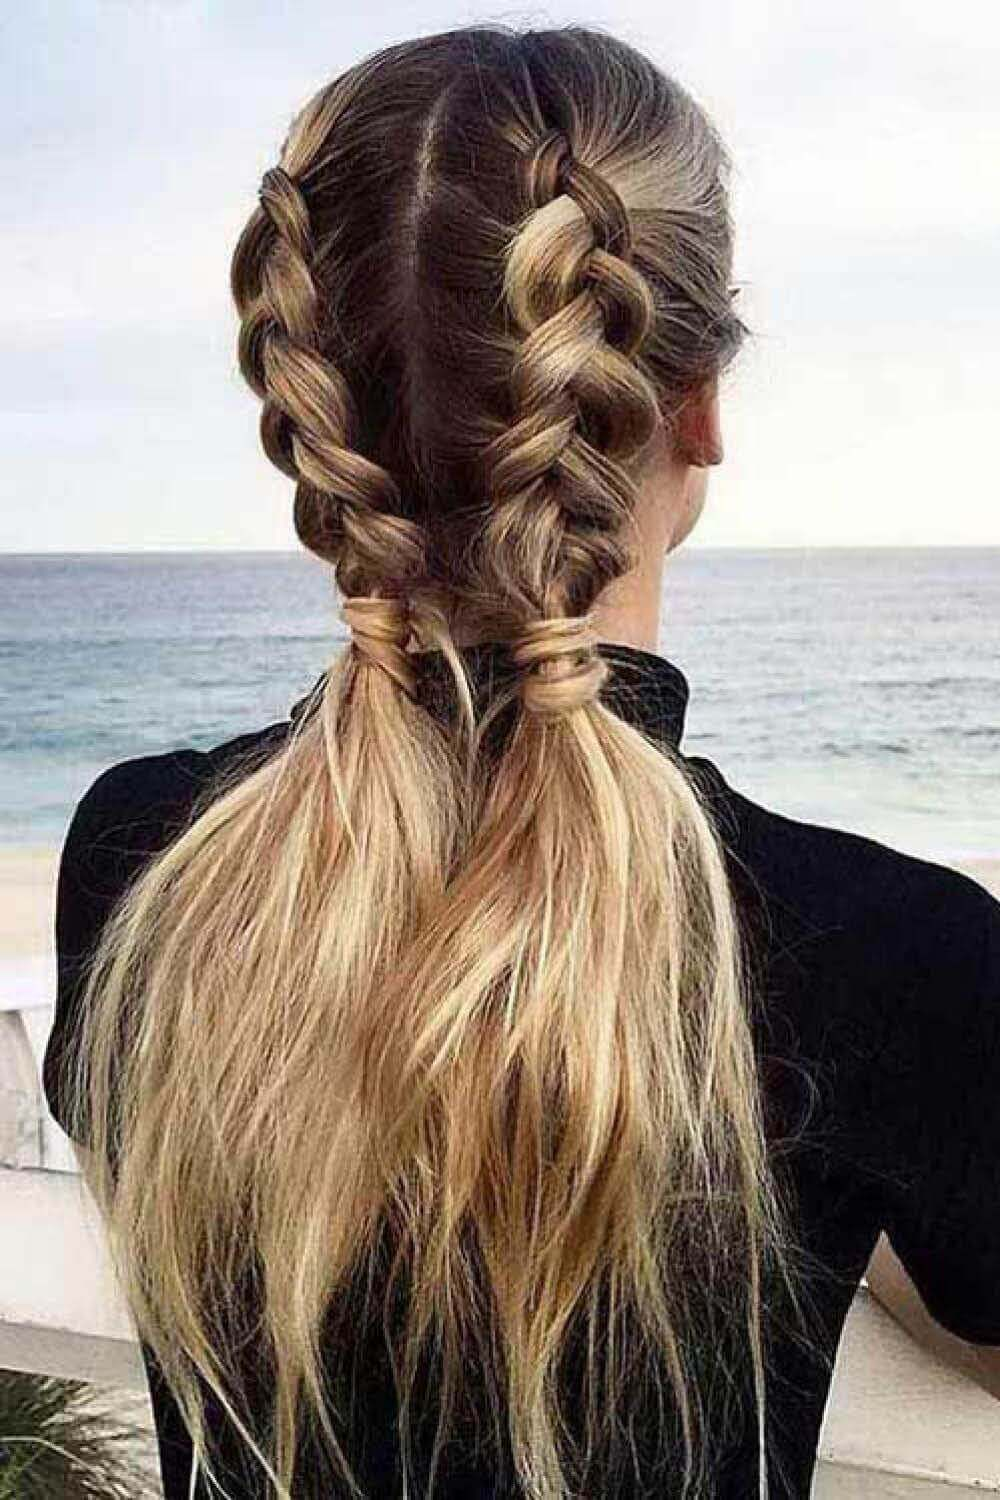 braids with pigtails